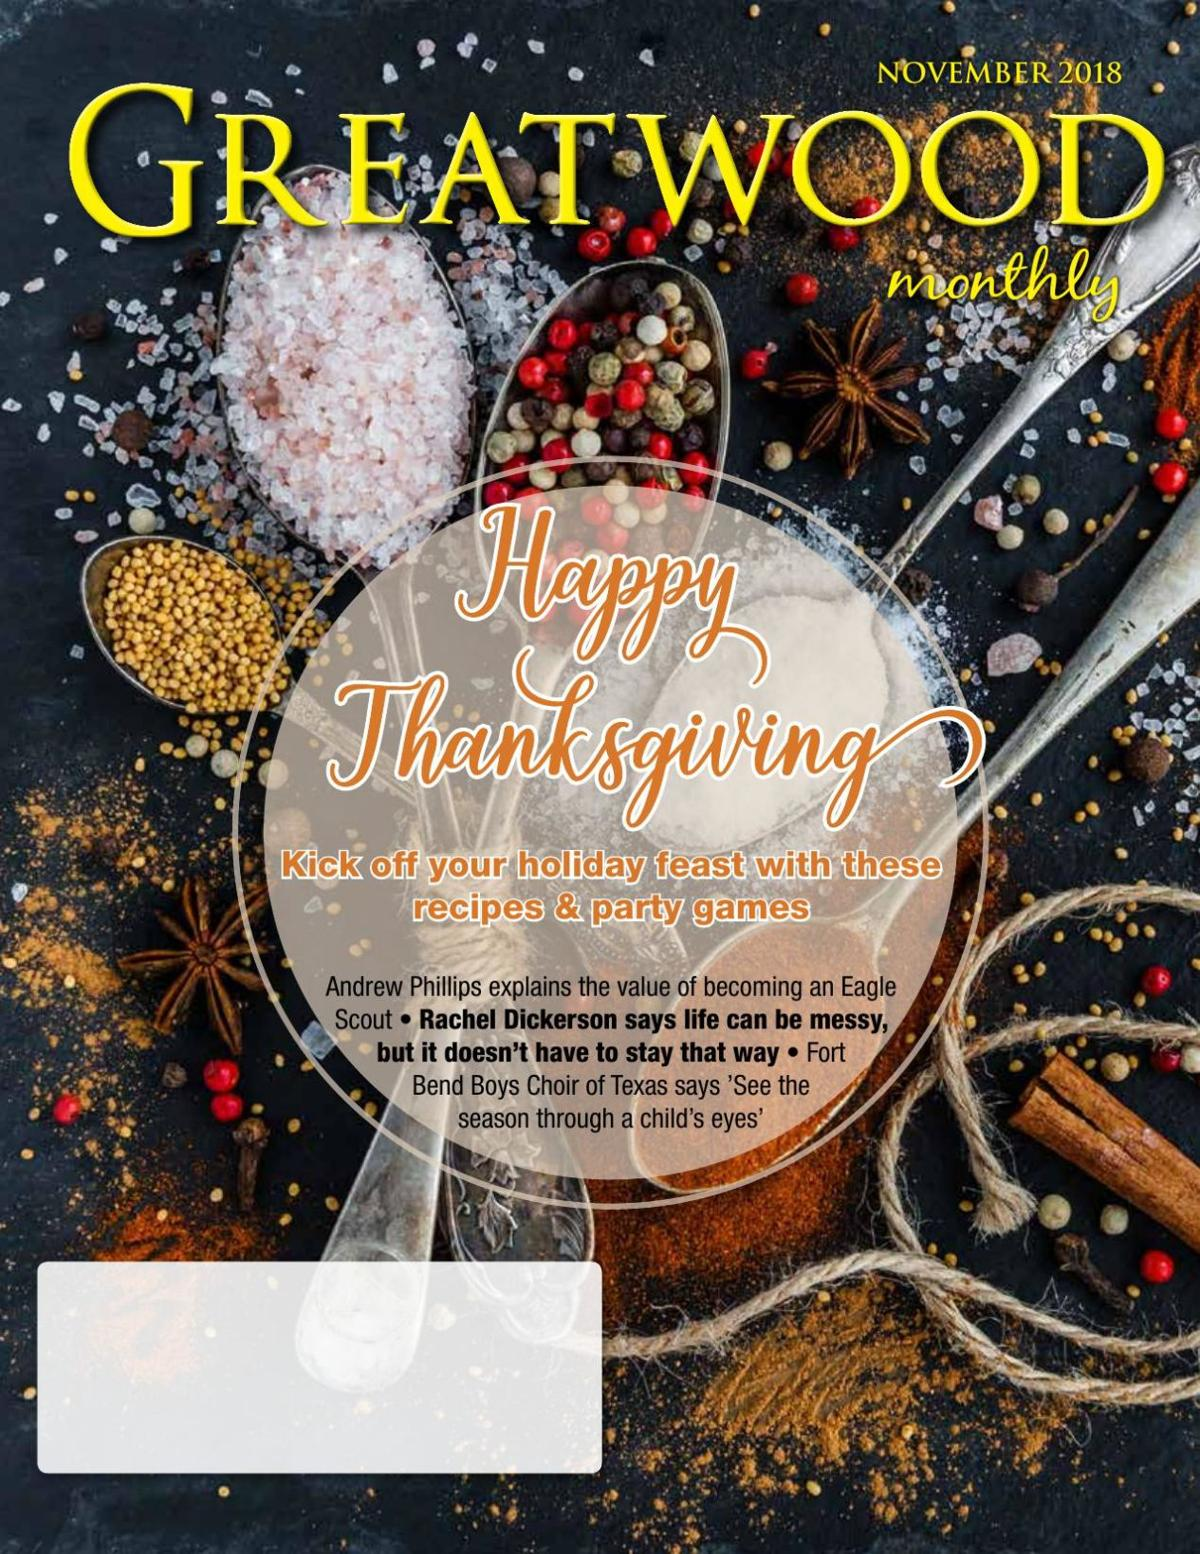 Greatwood Monthly: November 2018